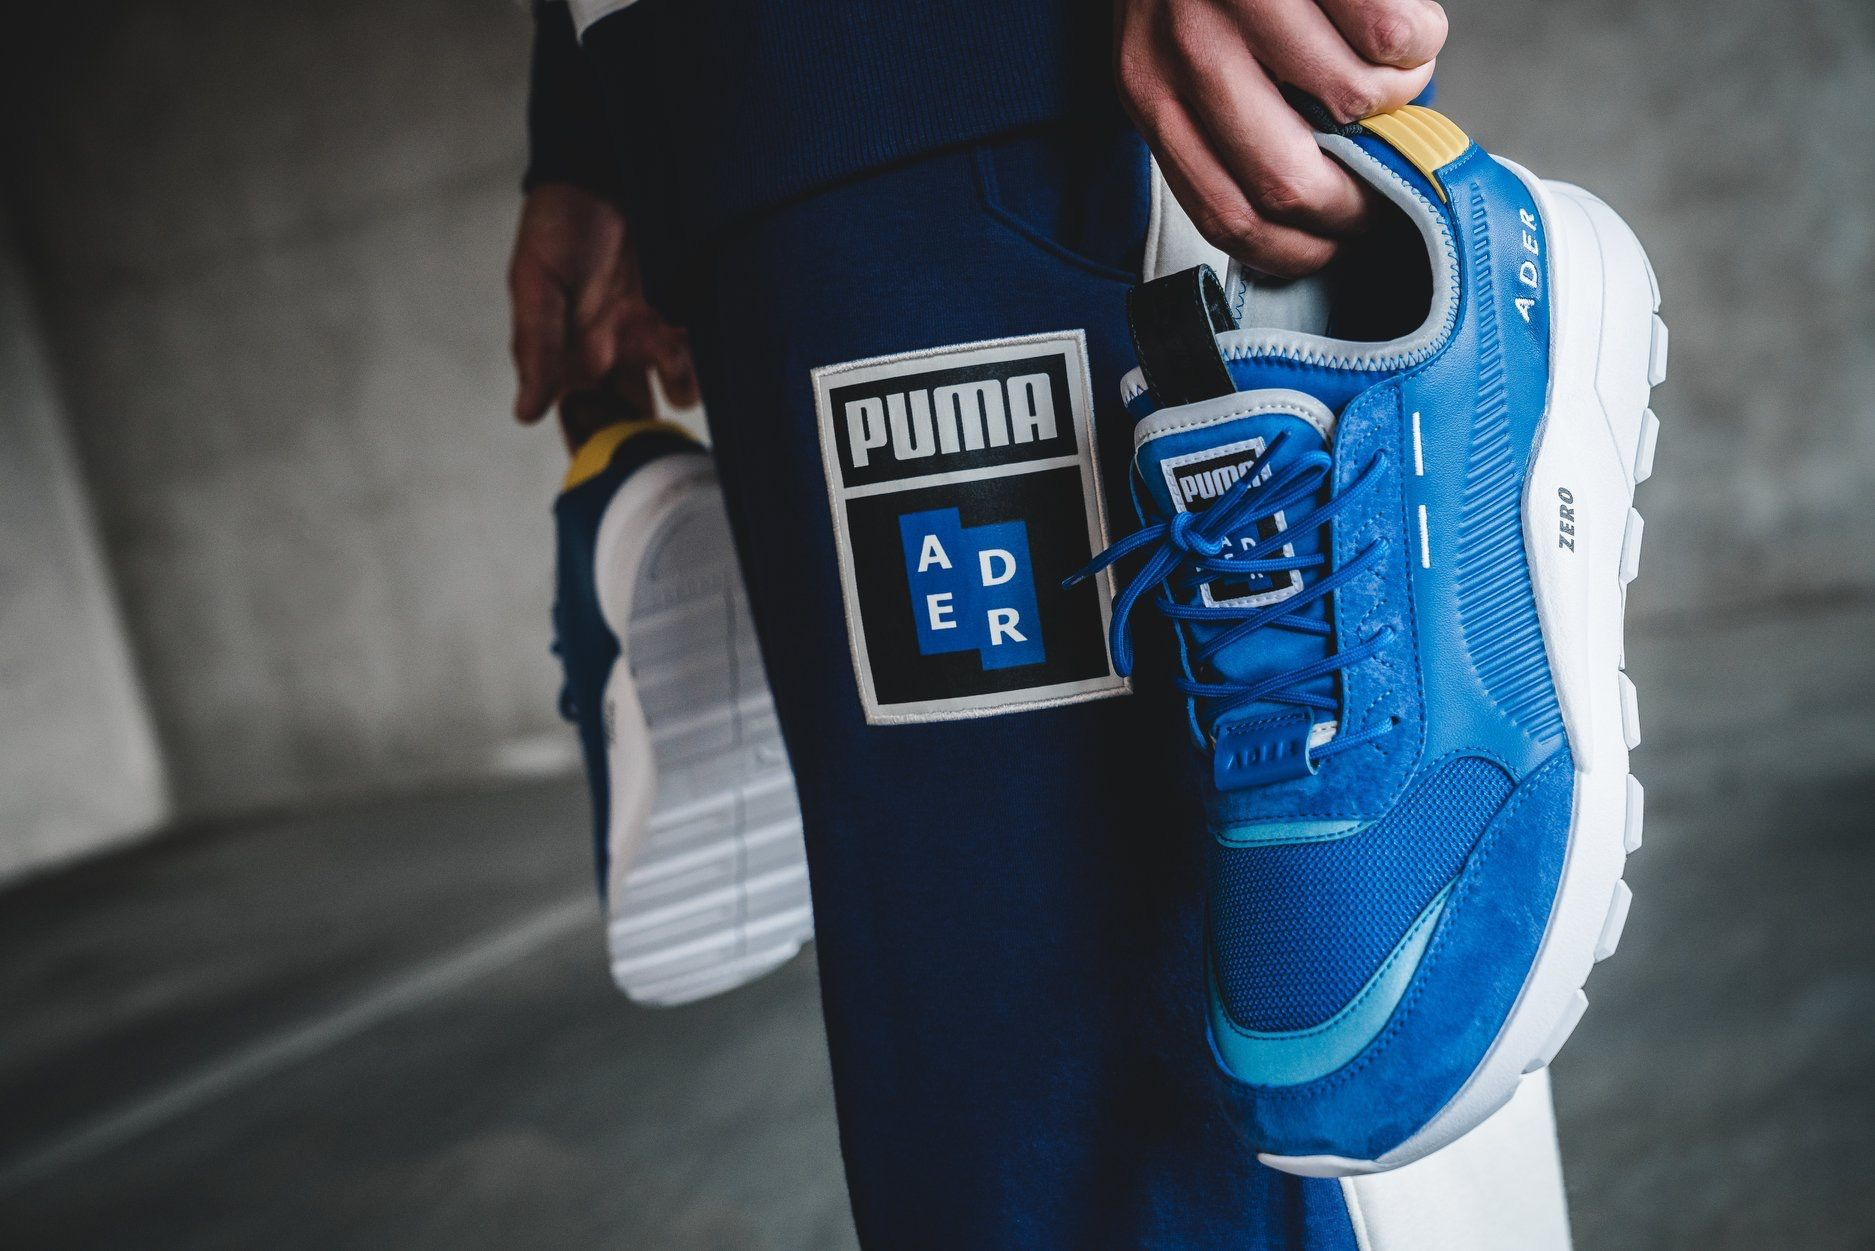 Adler Error x Puma RS 0 | Sneakers nike, Sneakers, Running shoes